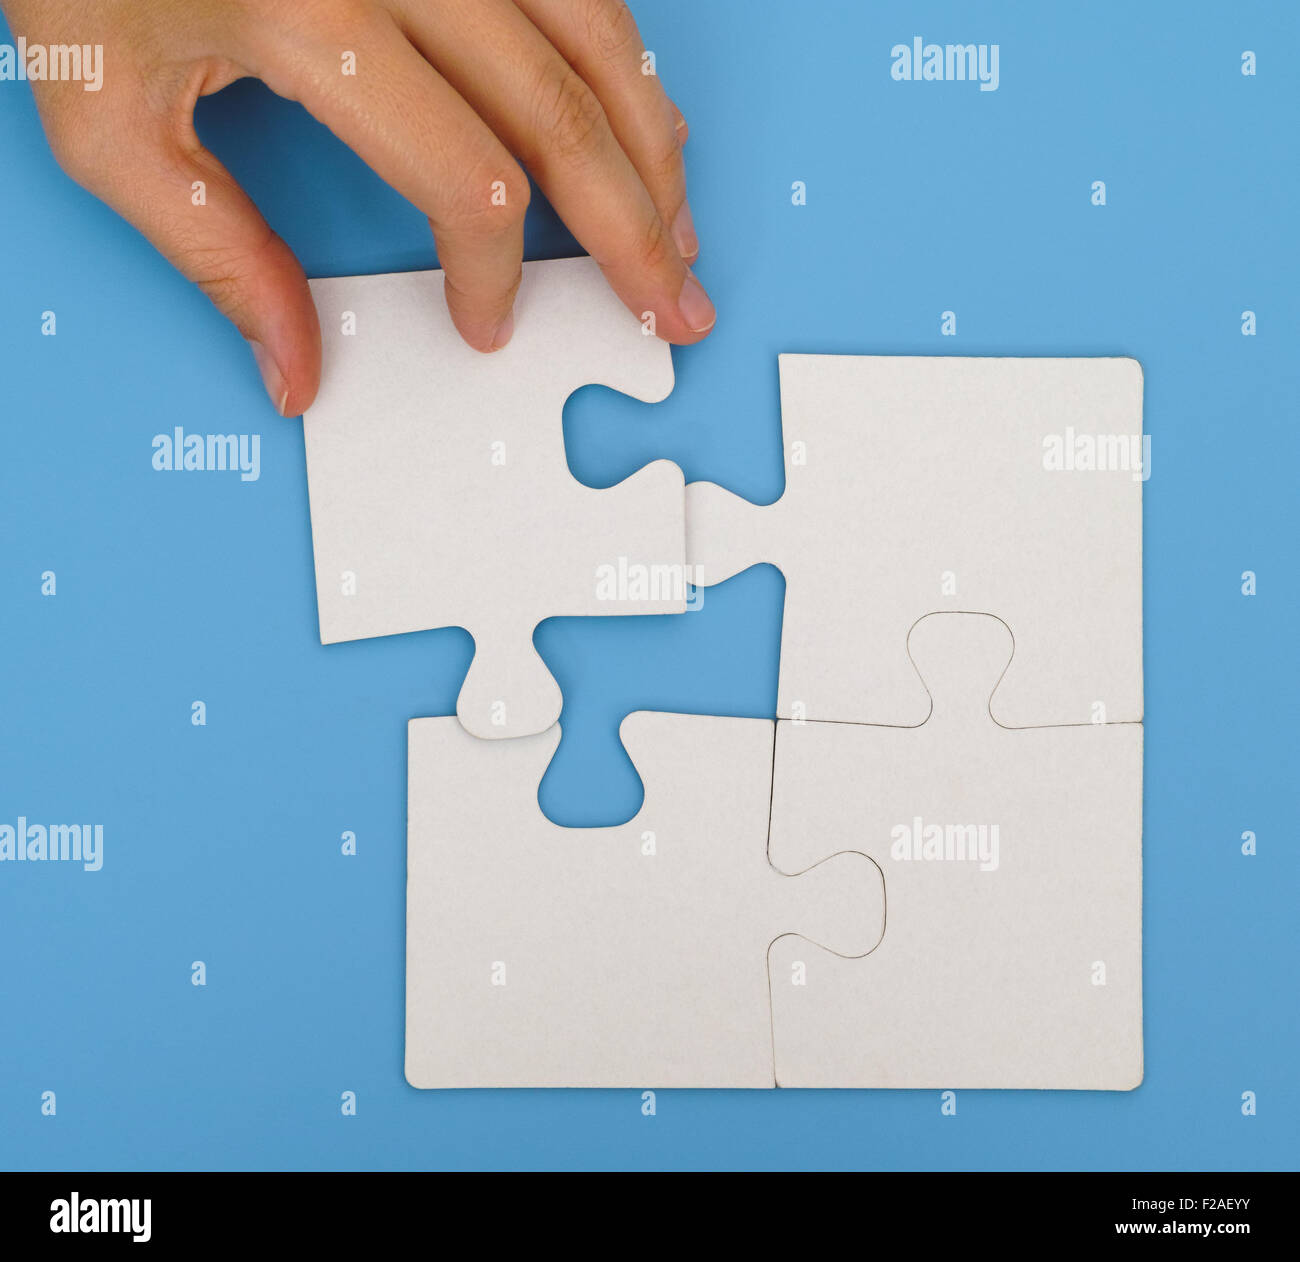 Woman hand putting the final piece to complete simple puzzle on blue background - Stock Image